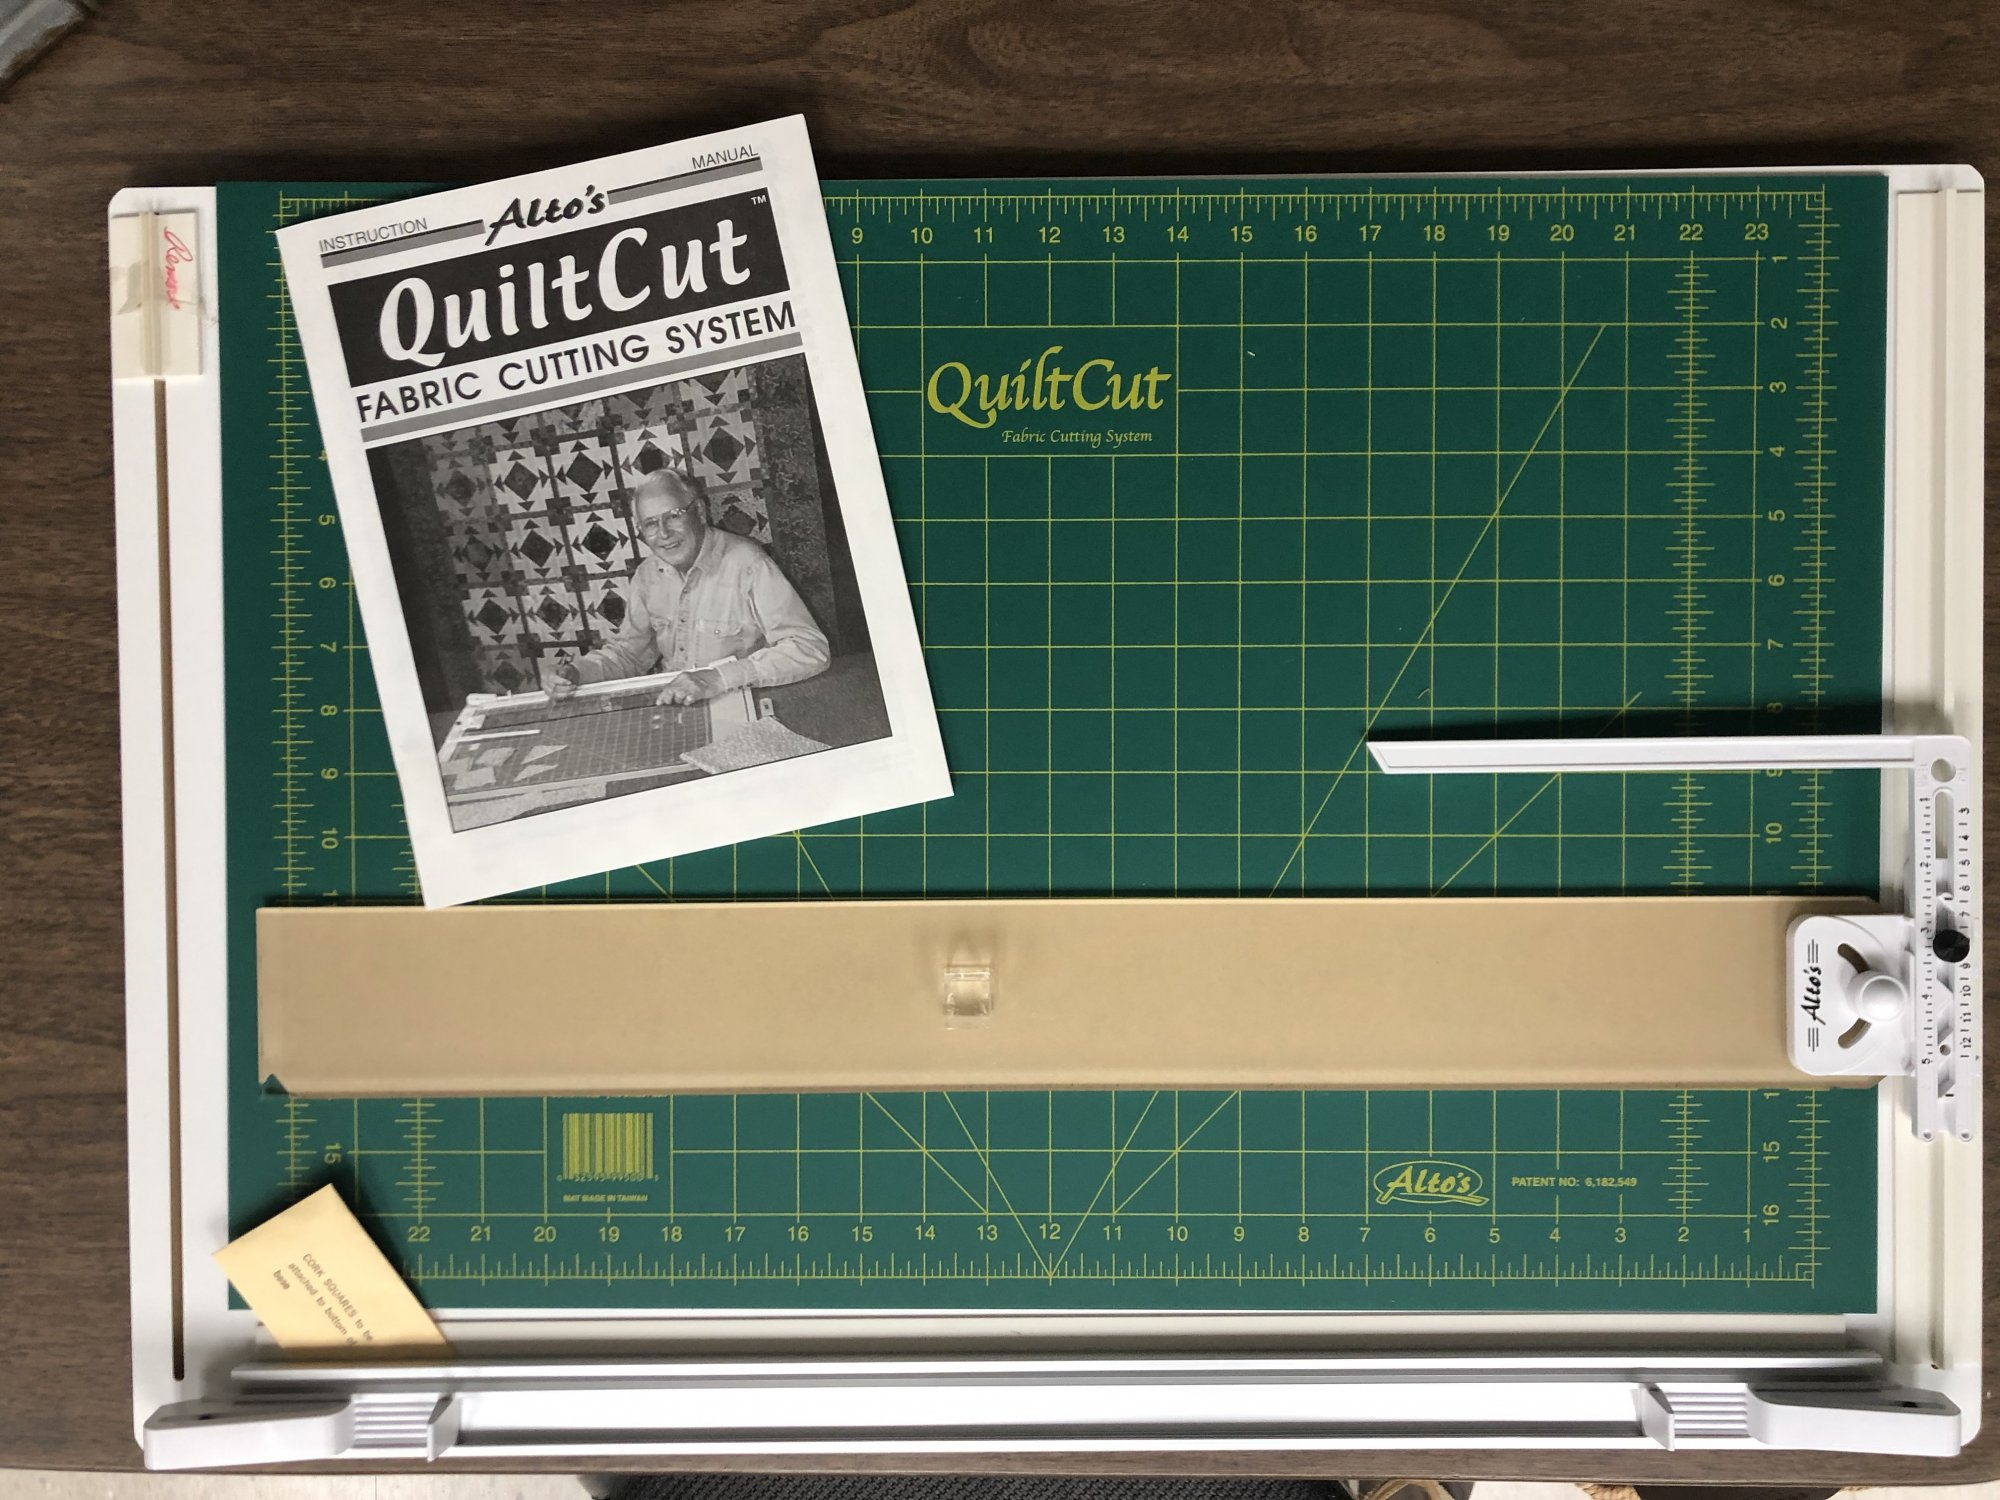 Alto's QuiltCut Fabric Cutting System